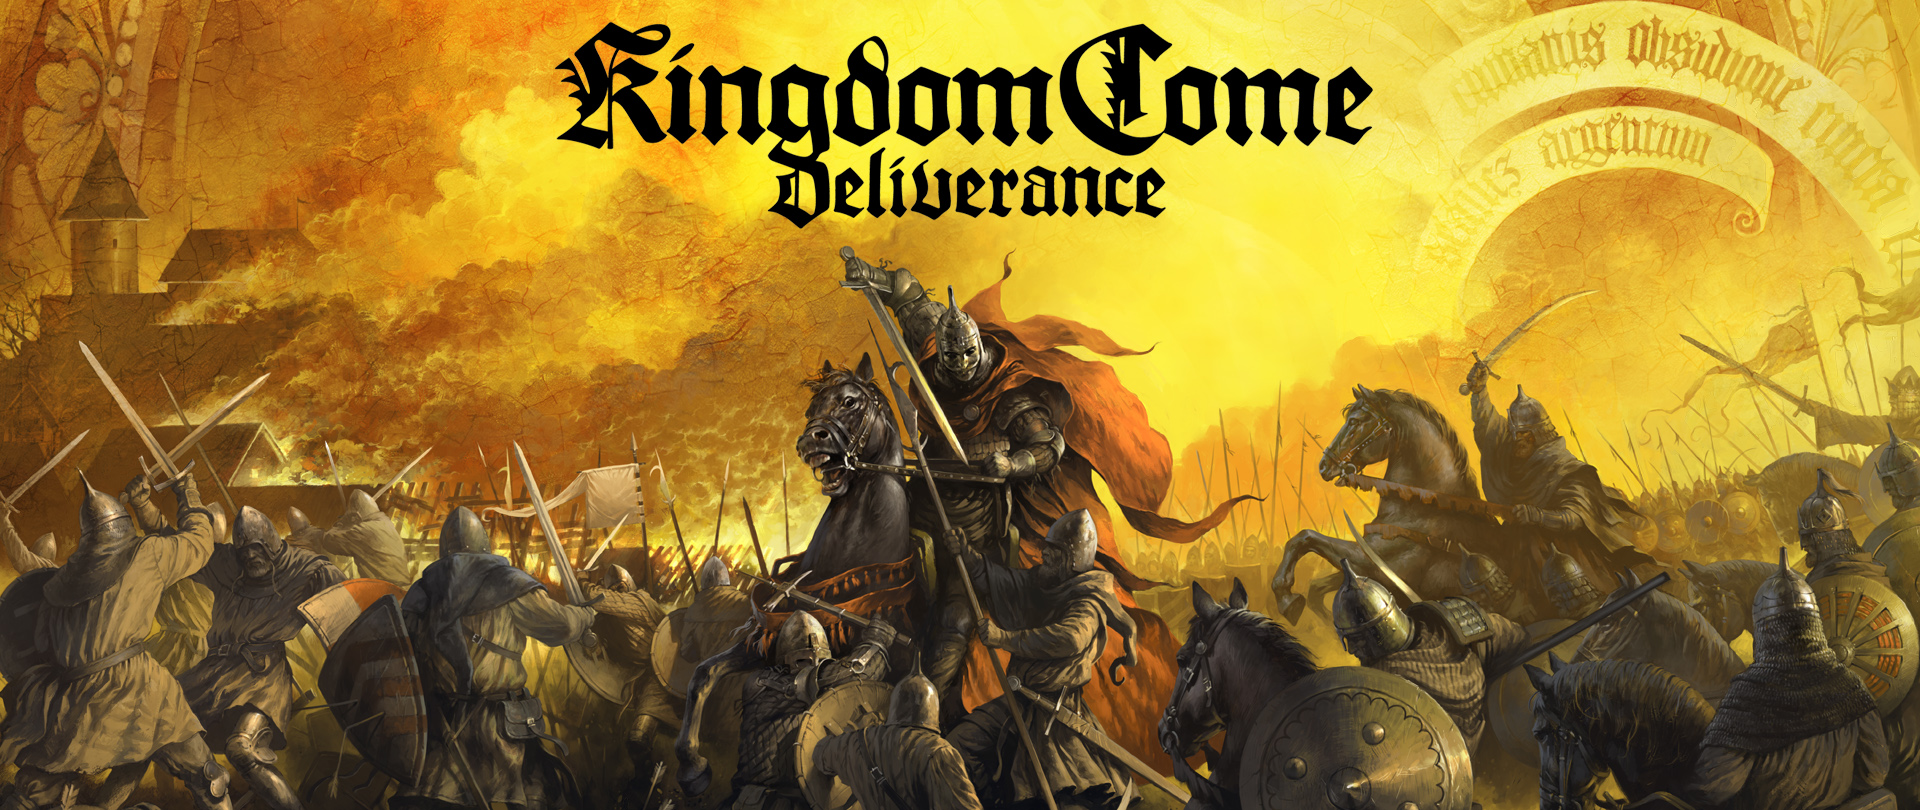 kingdom come deliverance patch 1.3  skidrow